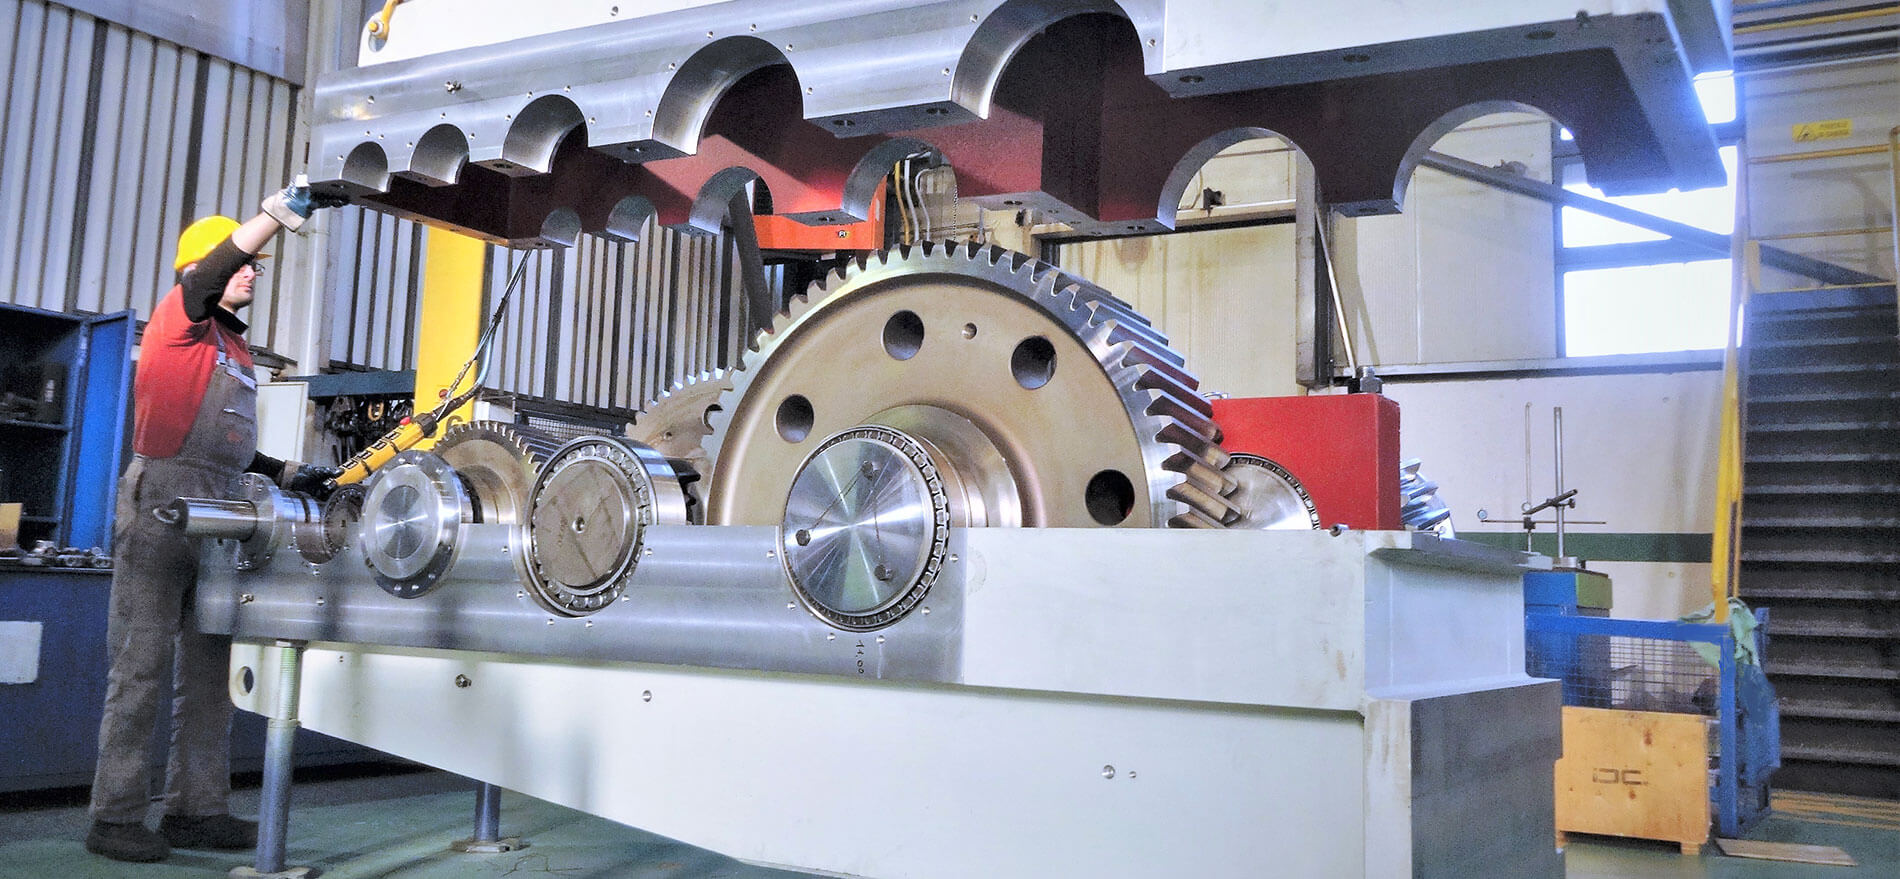 hot rolling mill engineering gearboxes